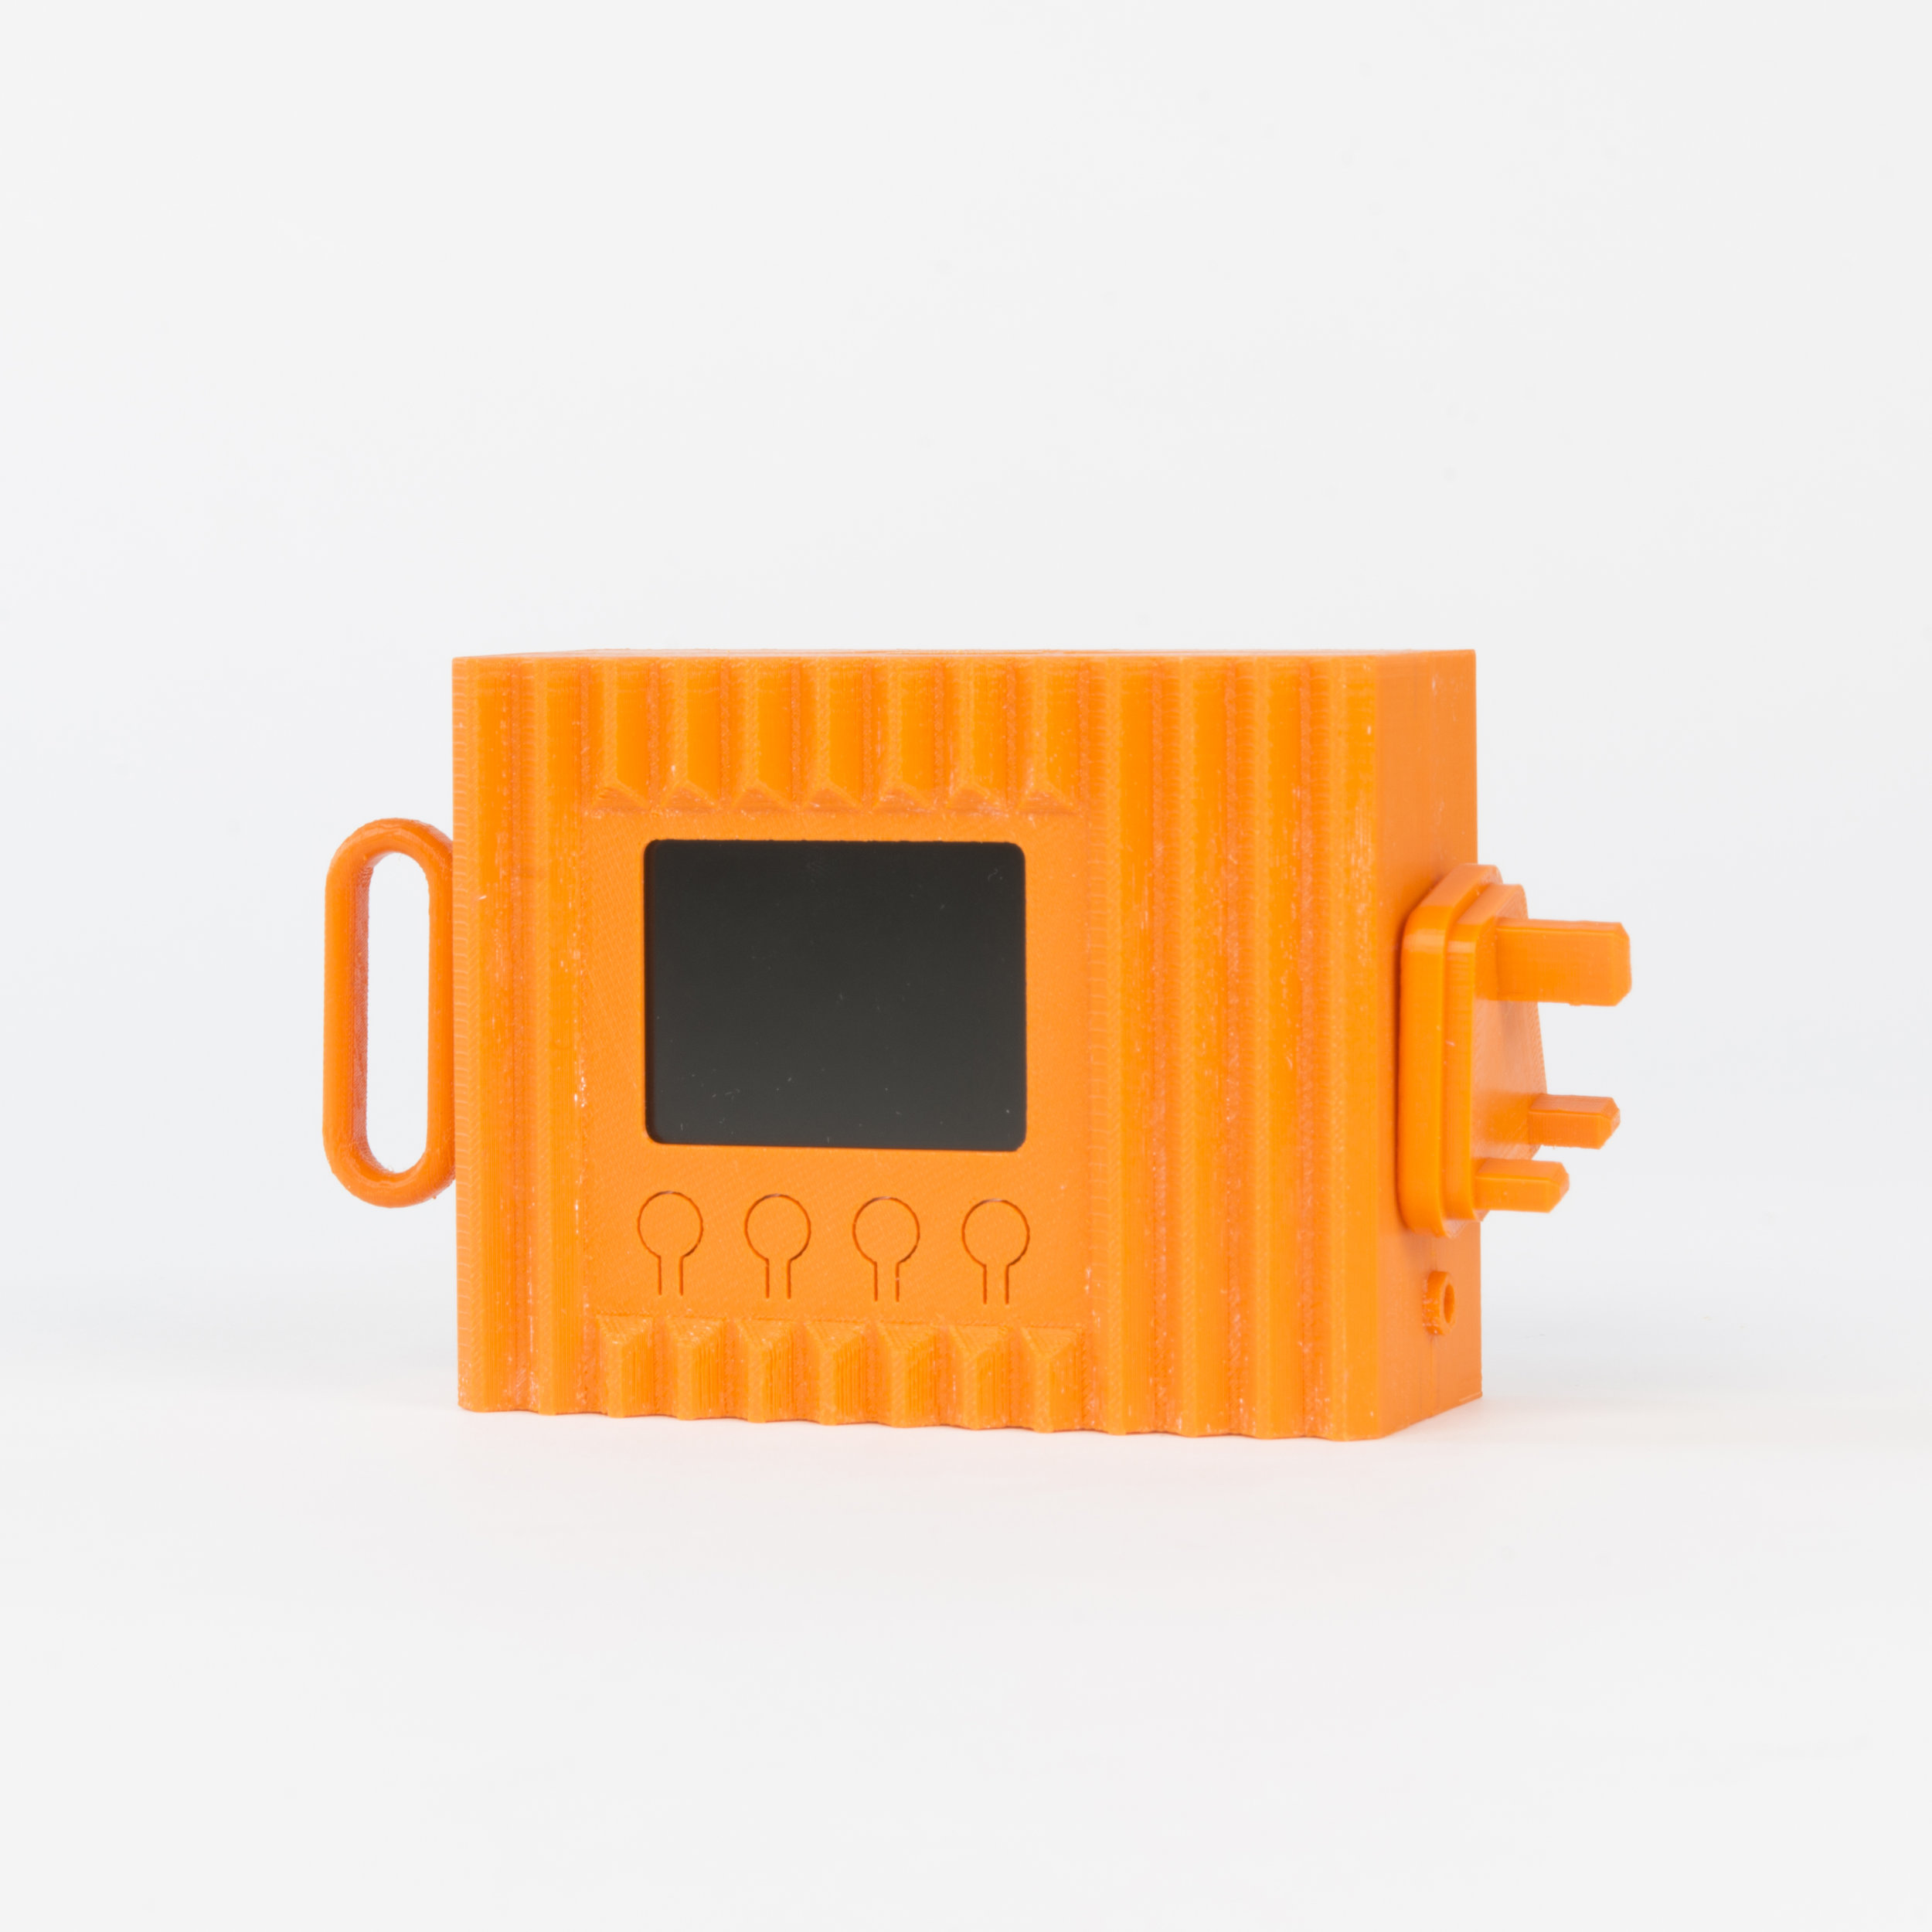 Threaded Case Camera    This housing features four threaded sockets that allow a number of accessories to be attached, enabling the camera to be used in different situations.  more